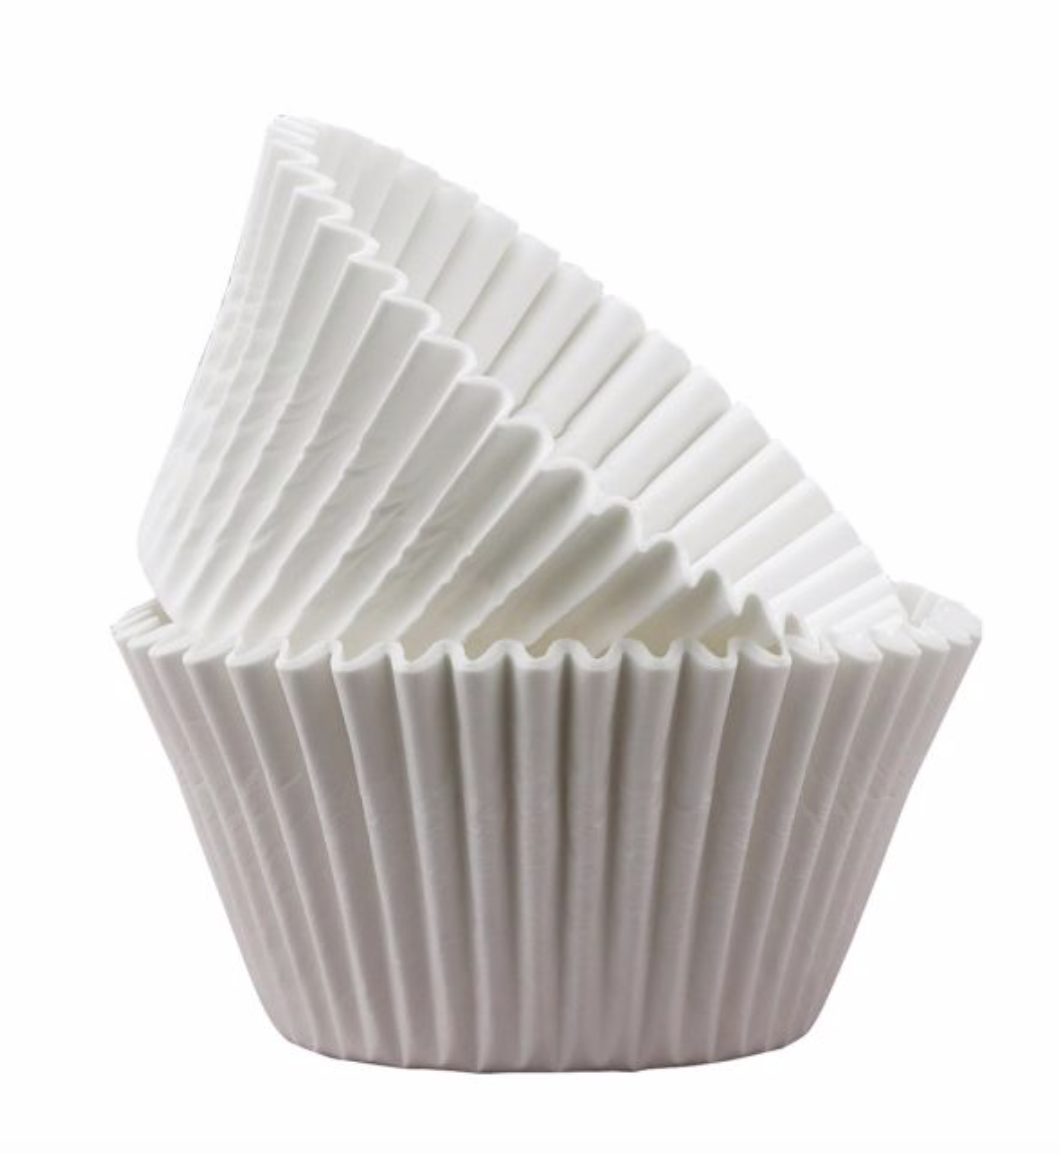 Mrs. Anderson's Baking Texas Muffin Paper Baking Cups